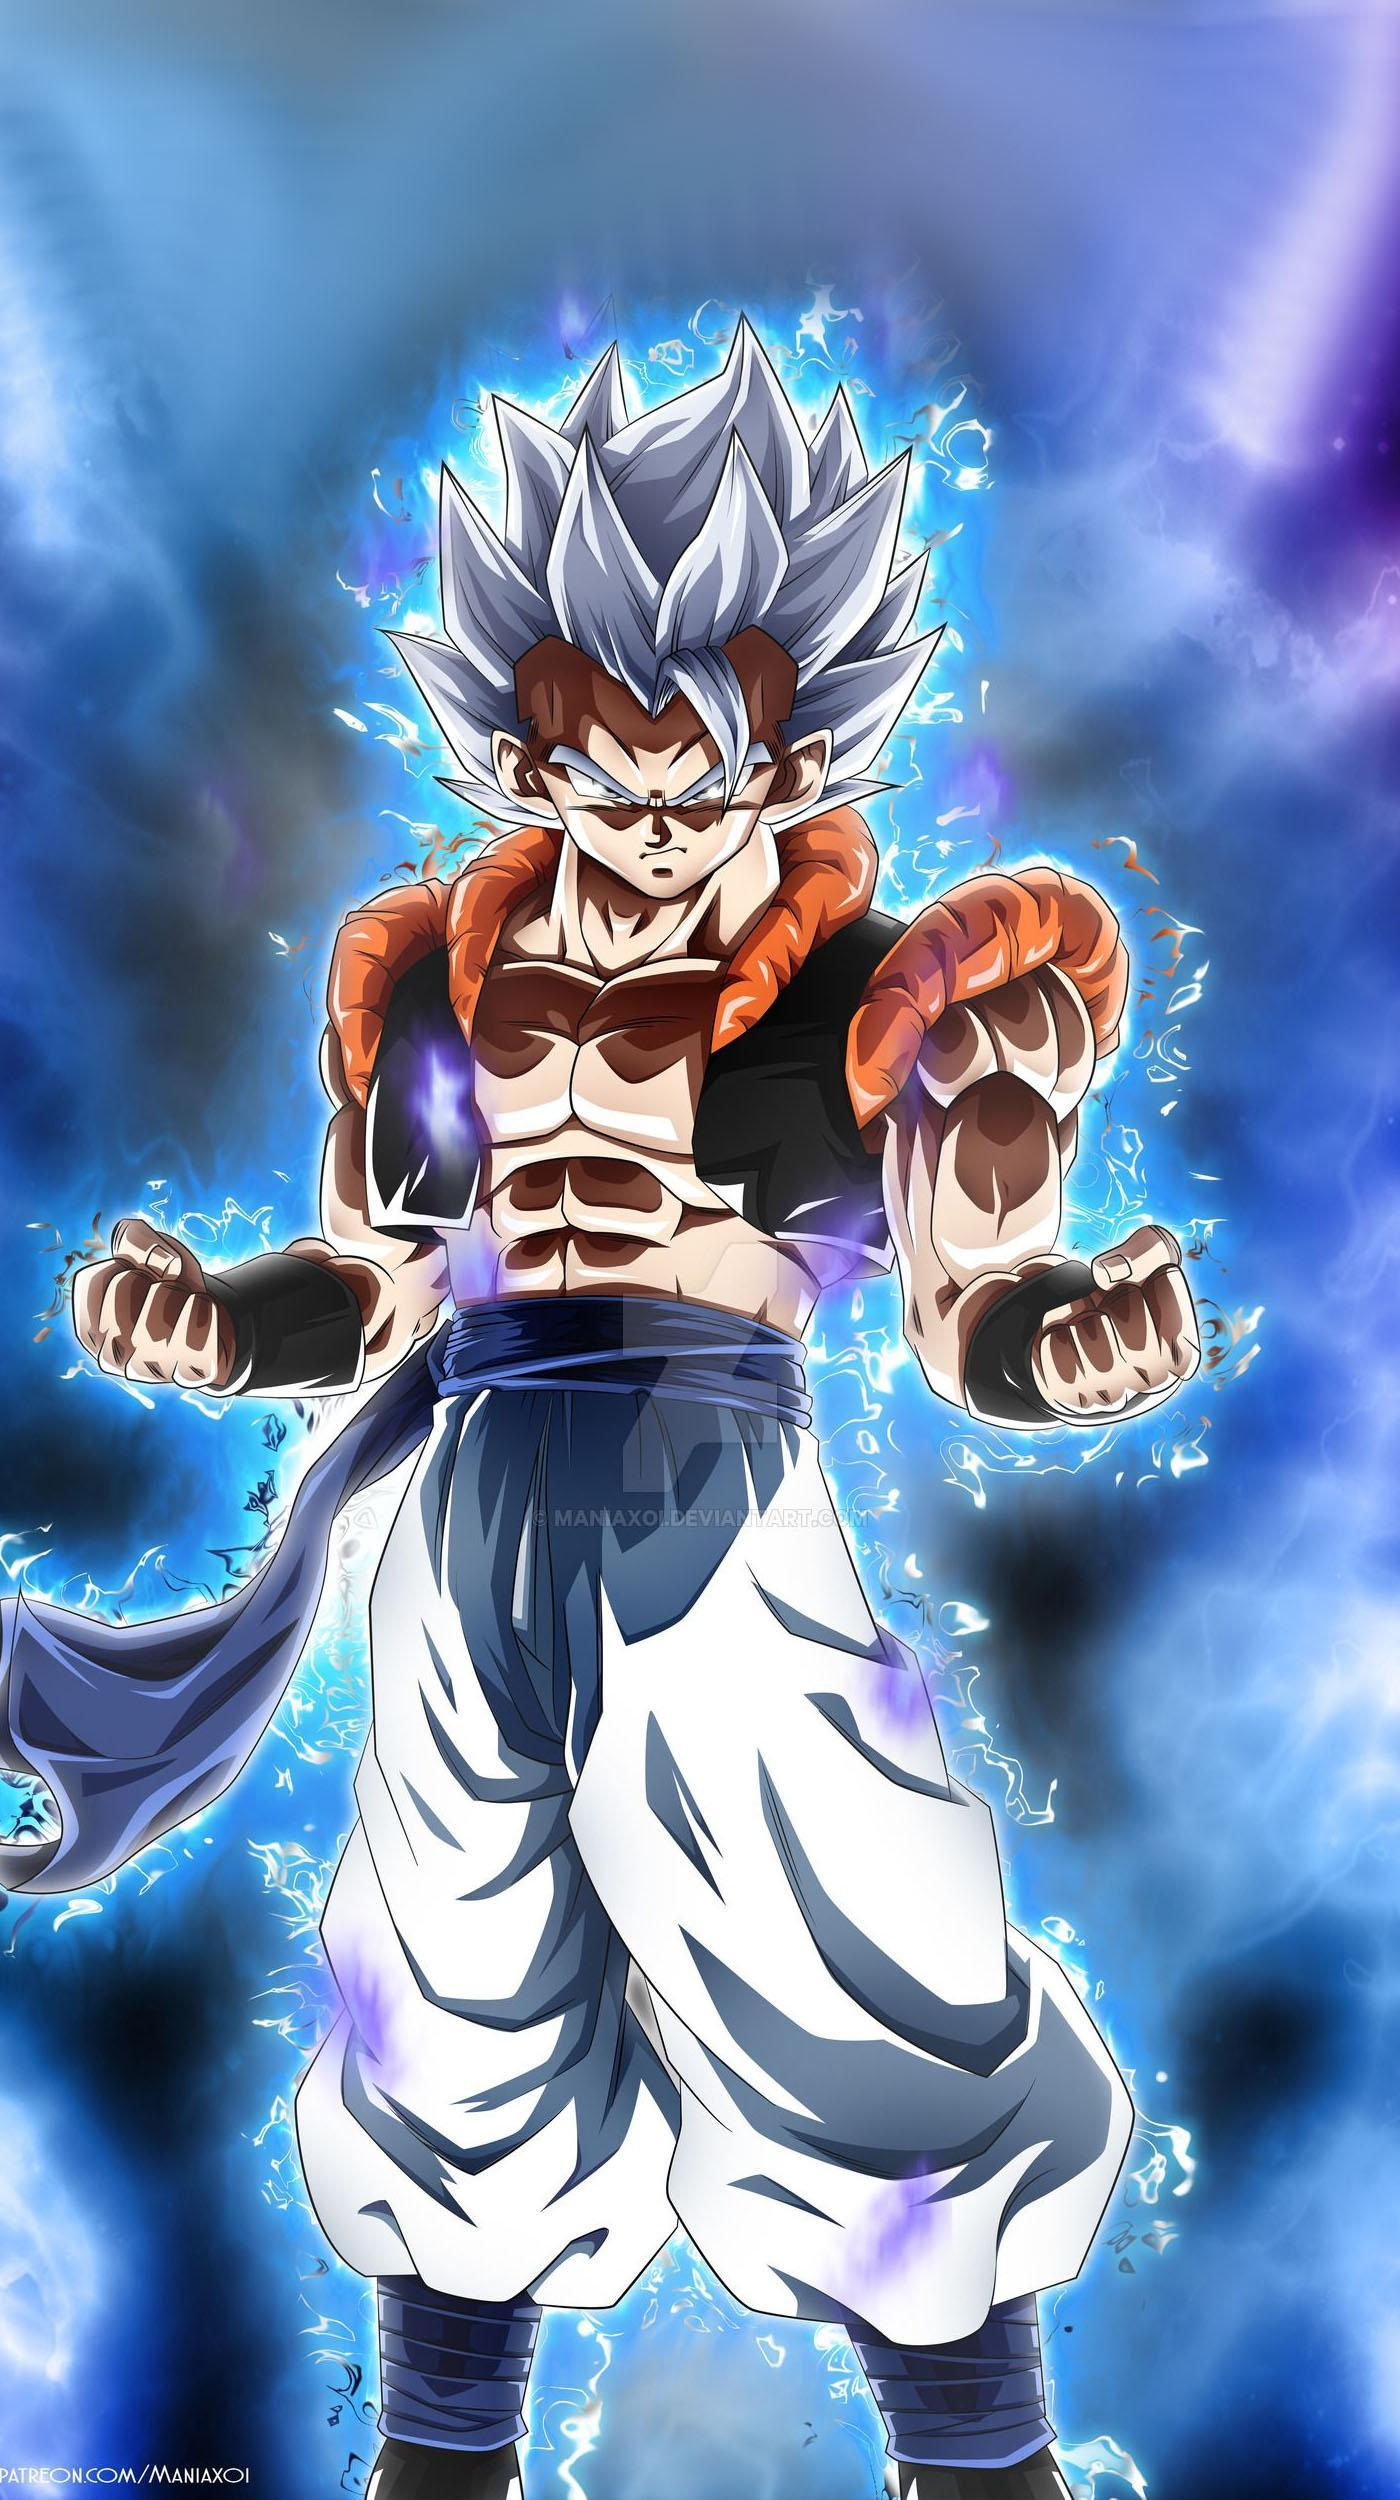 Dragon Ball Z Live Wallpapers For Android Posted By John Peltier